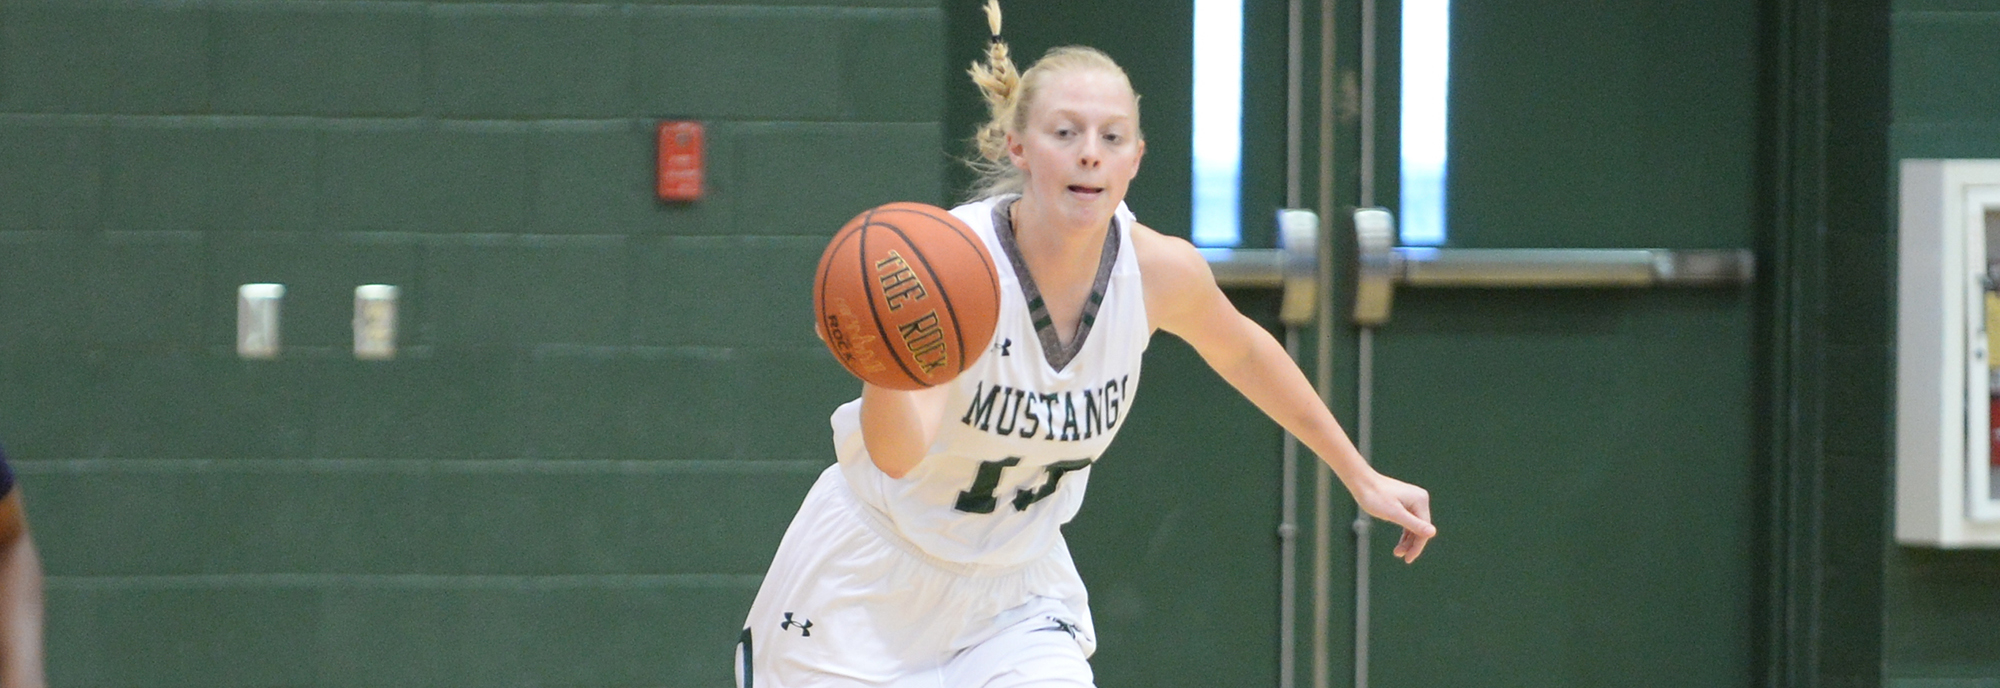 Crist Reaches Double Figures in Third Straight Game, Mustangs Fall at Albright